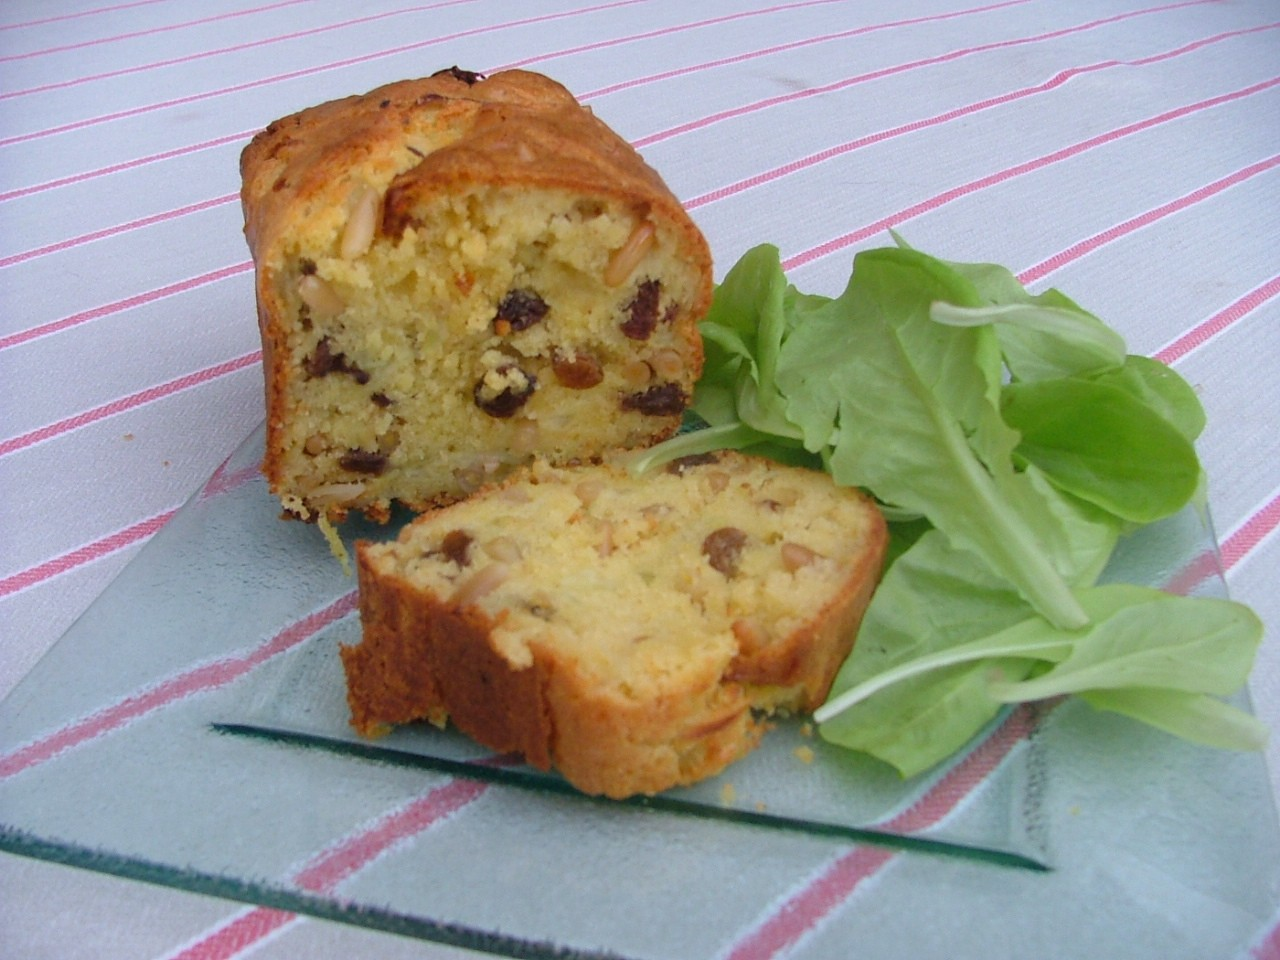 Gateau a base de raisin sec